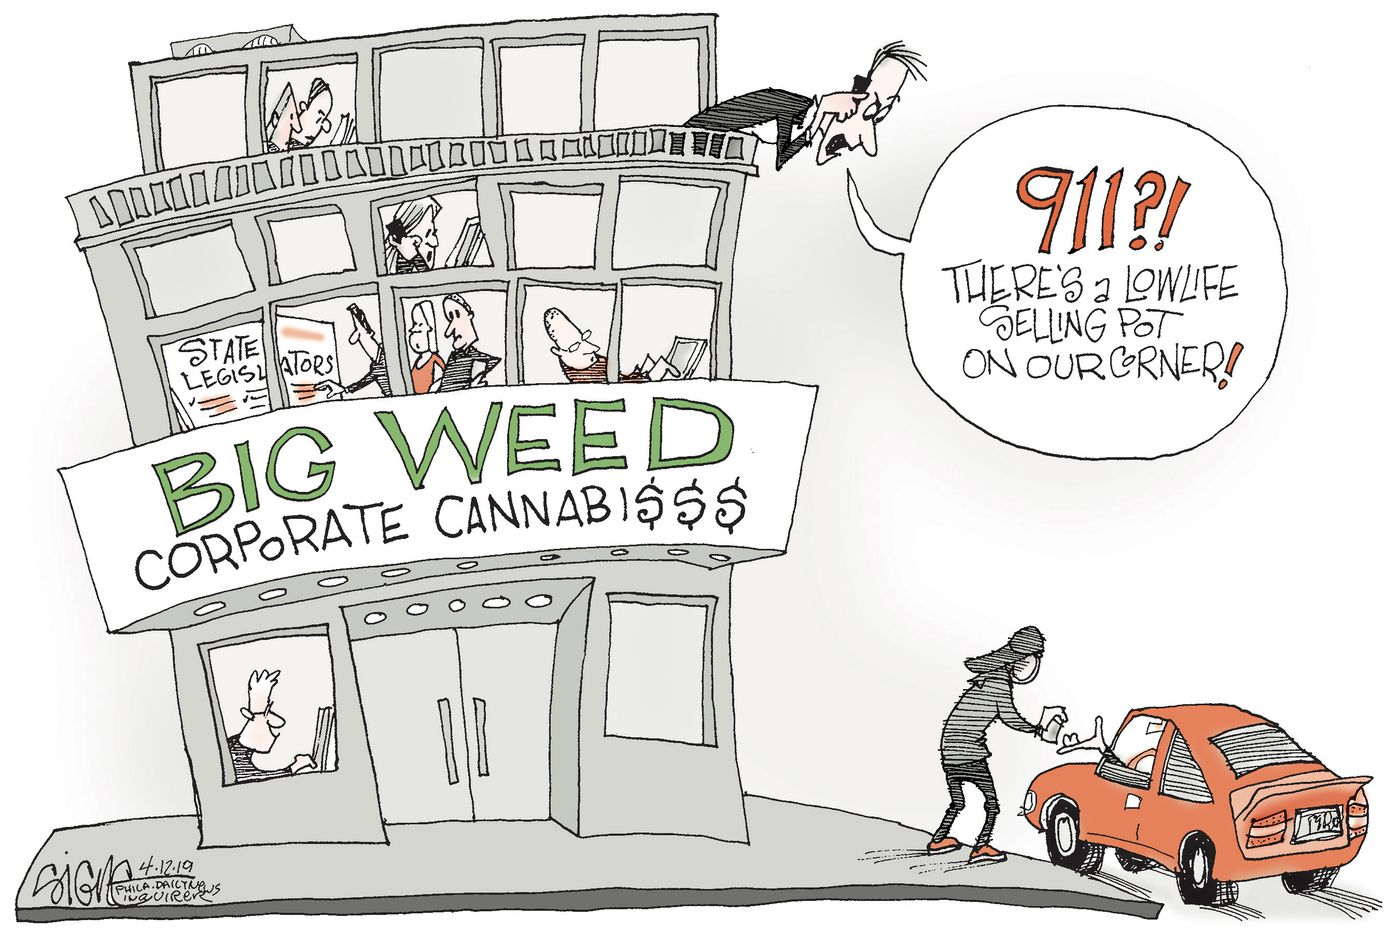 Political cartoon: Big Weed weeds out the little guy